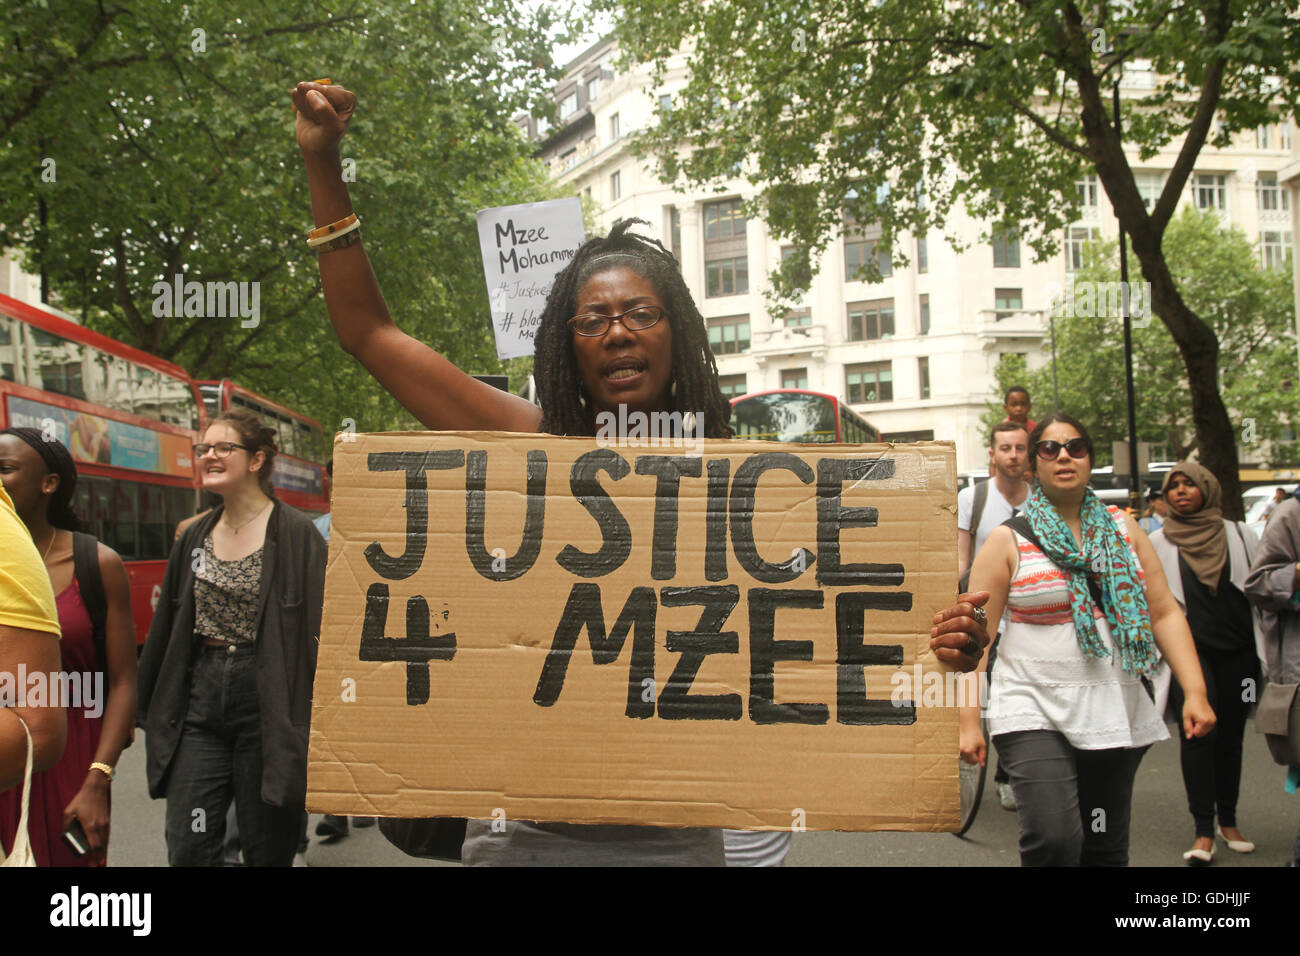 London, UK. 17th July, 2016: Marcia Riggs marches with her fist clenched during the Black Lives Matter march for - Stock Image